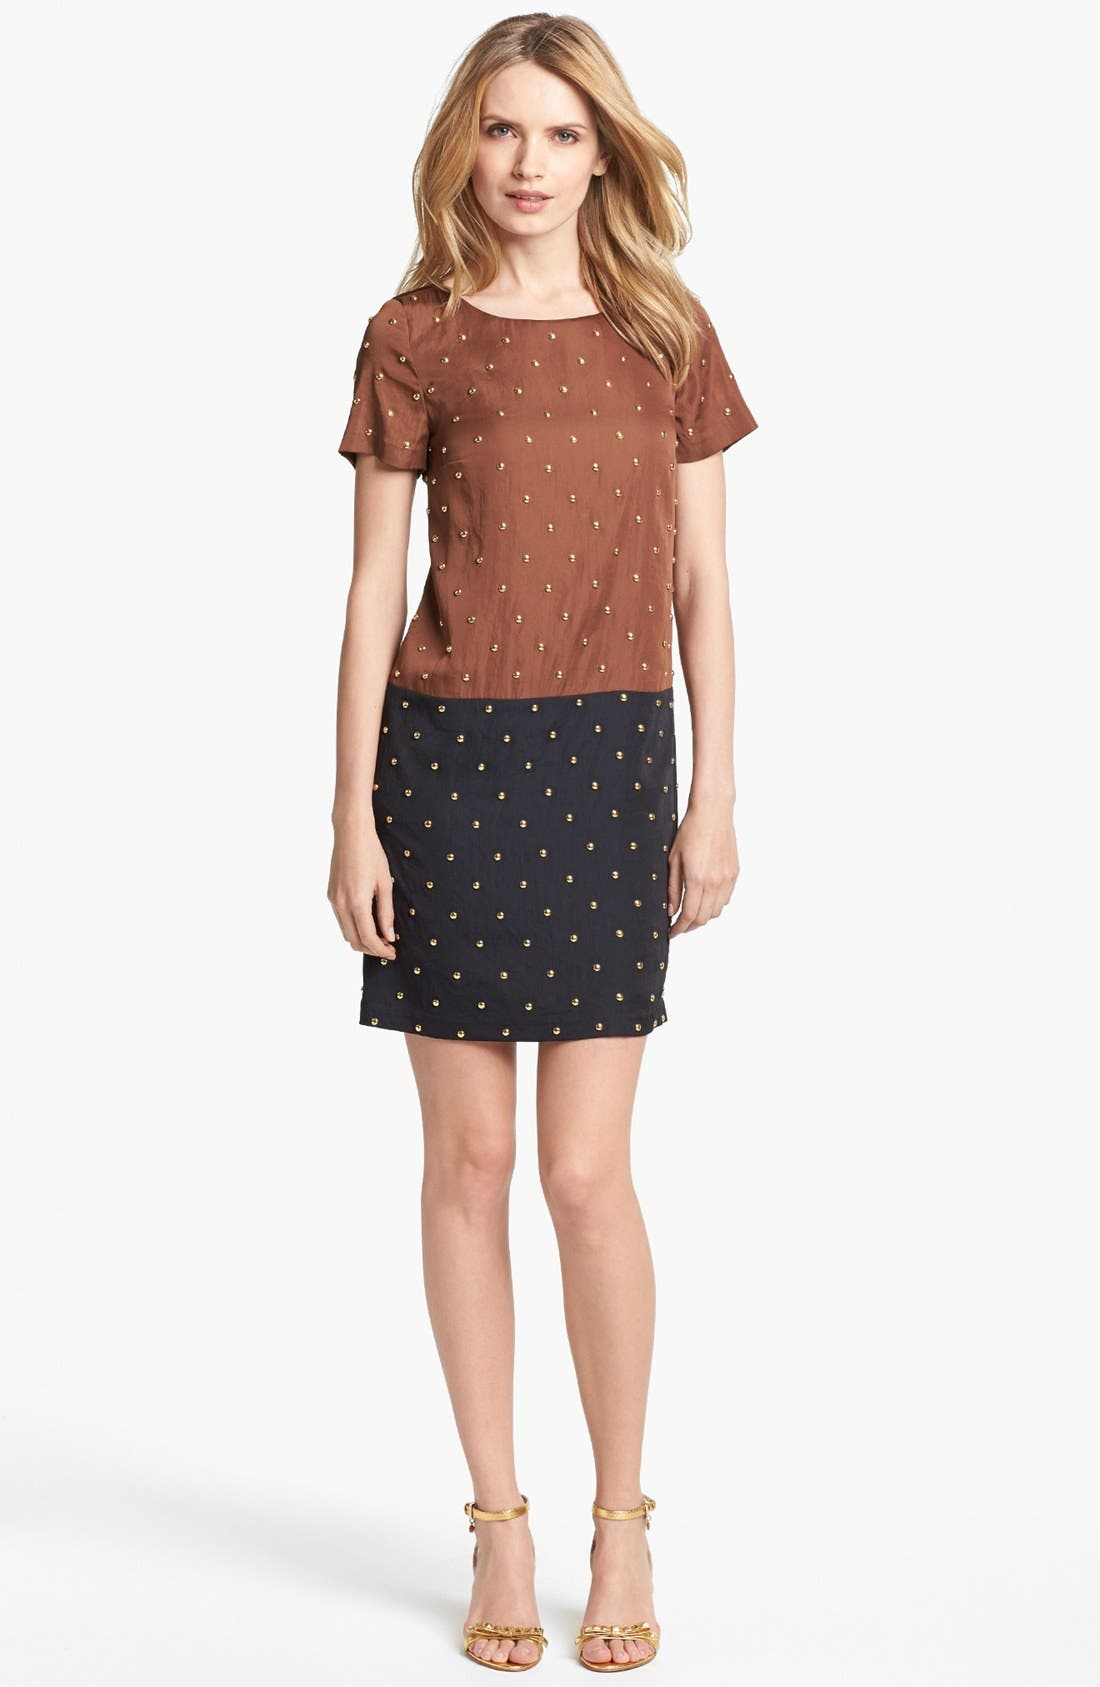 Alternate Image 1 Selected - MICHAEL Michael Kors Studded Colorblock Shift Dress